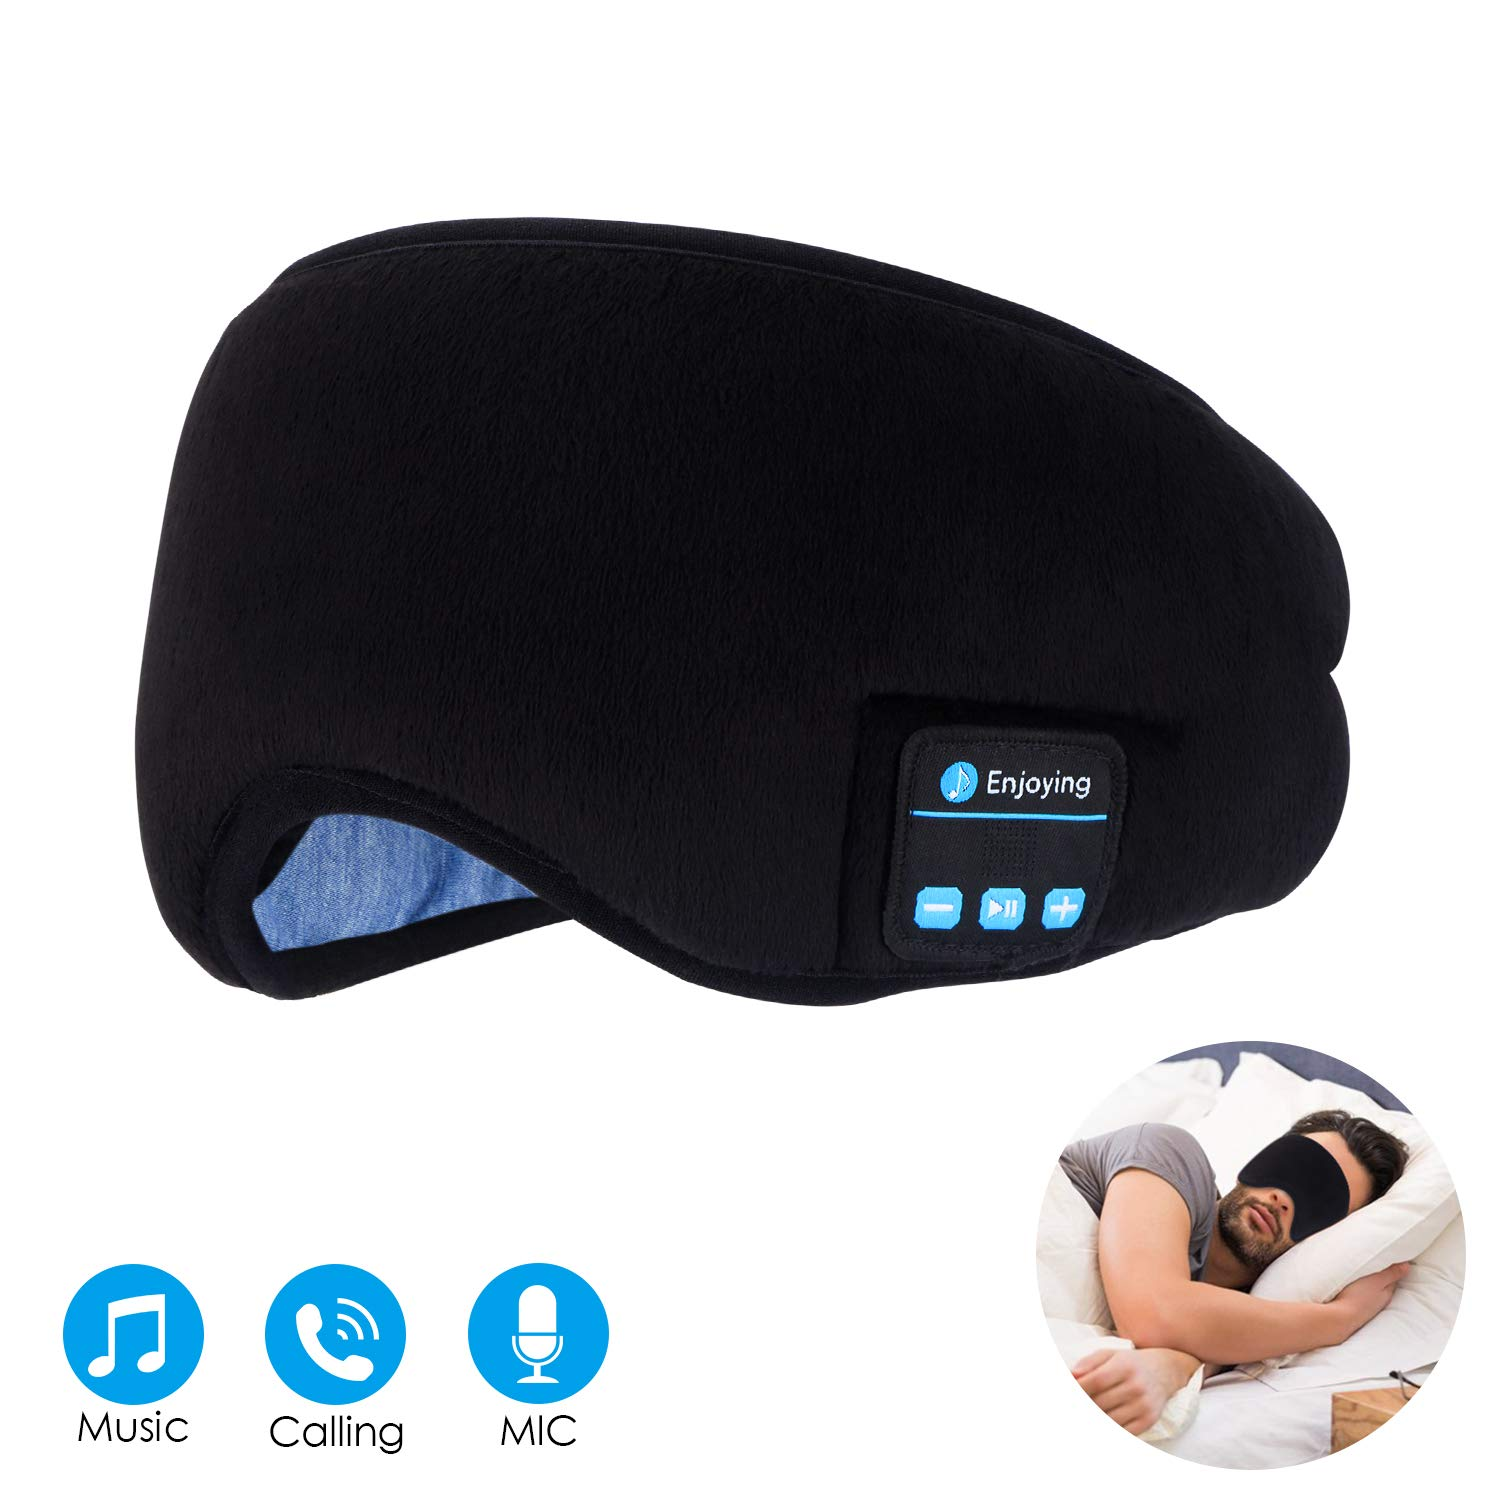 Sleep Headphones and Sleep Mask 2 in 1